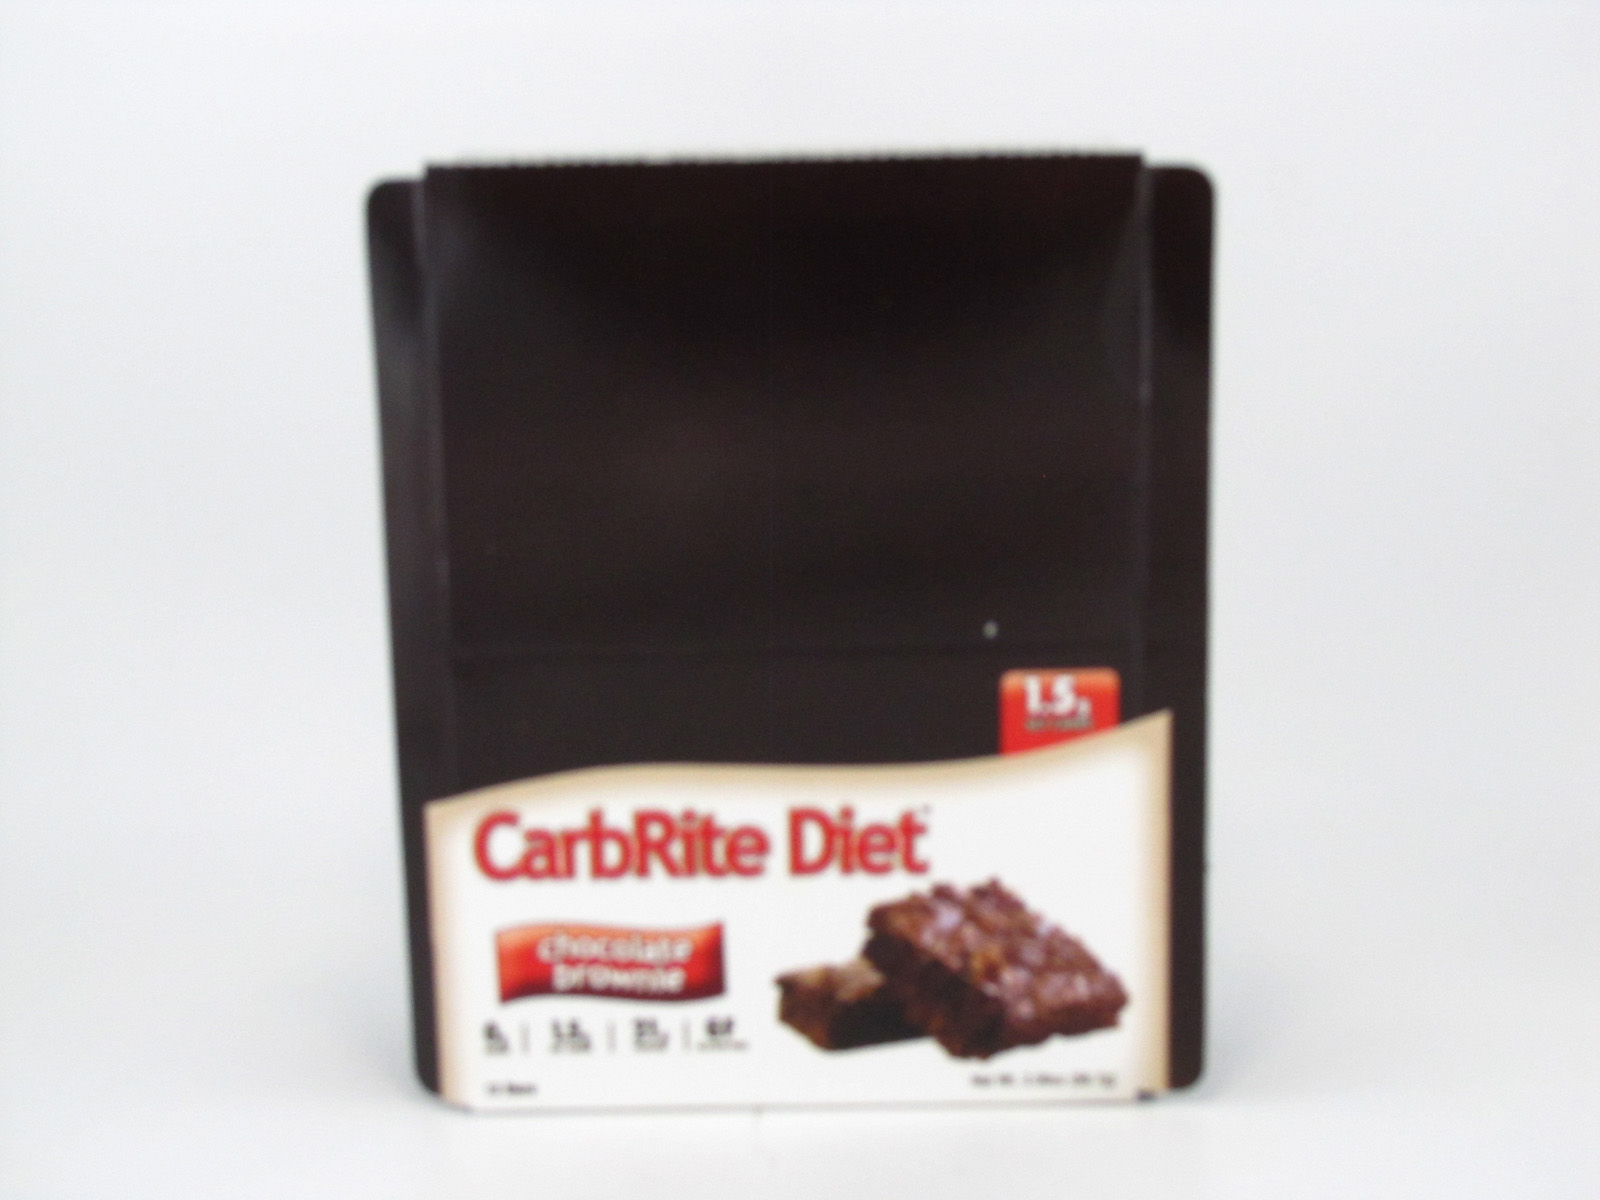 Doctor's CarbRite Diet - Chocolate Brownie - box view